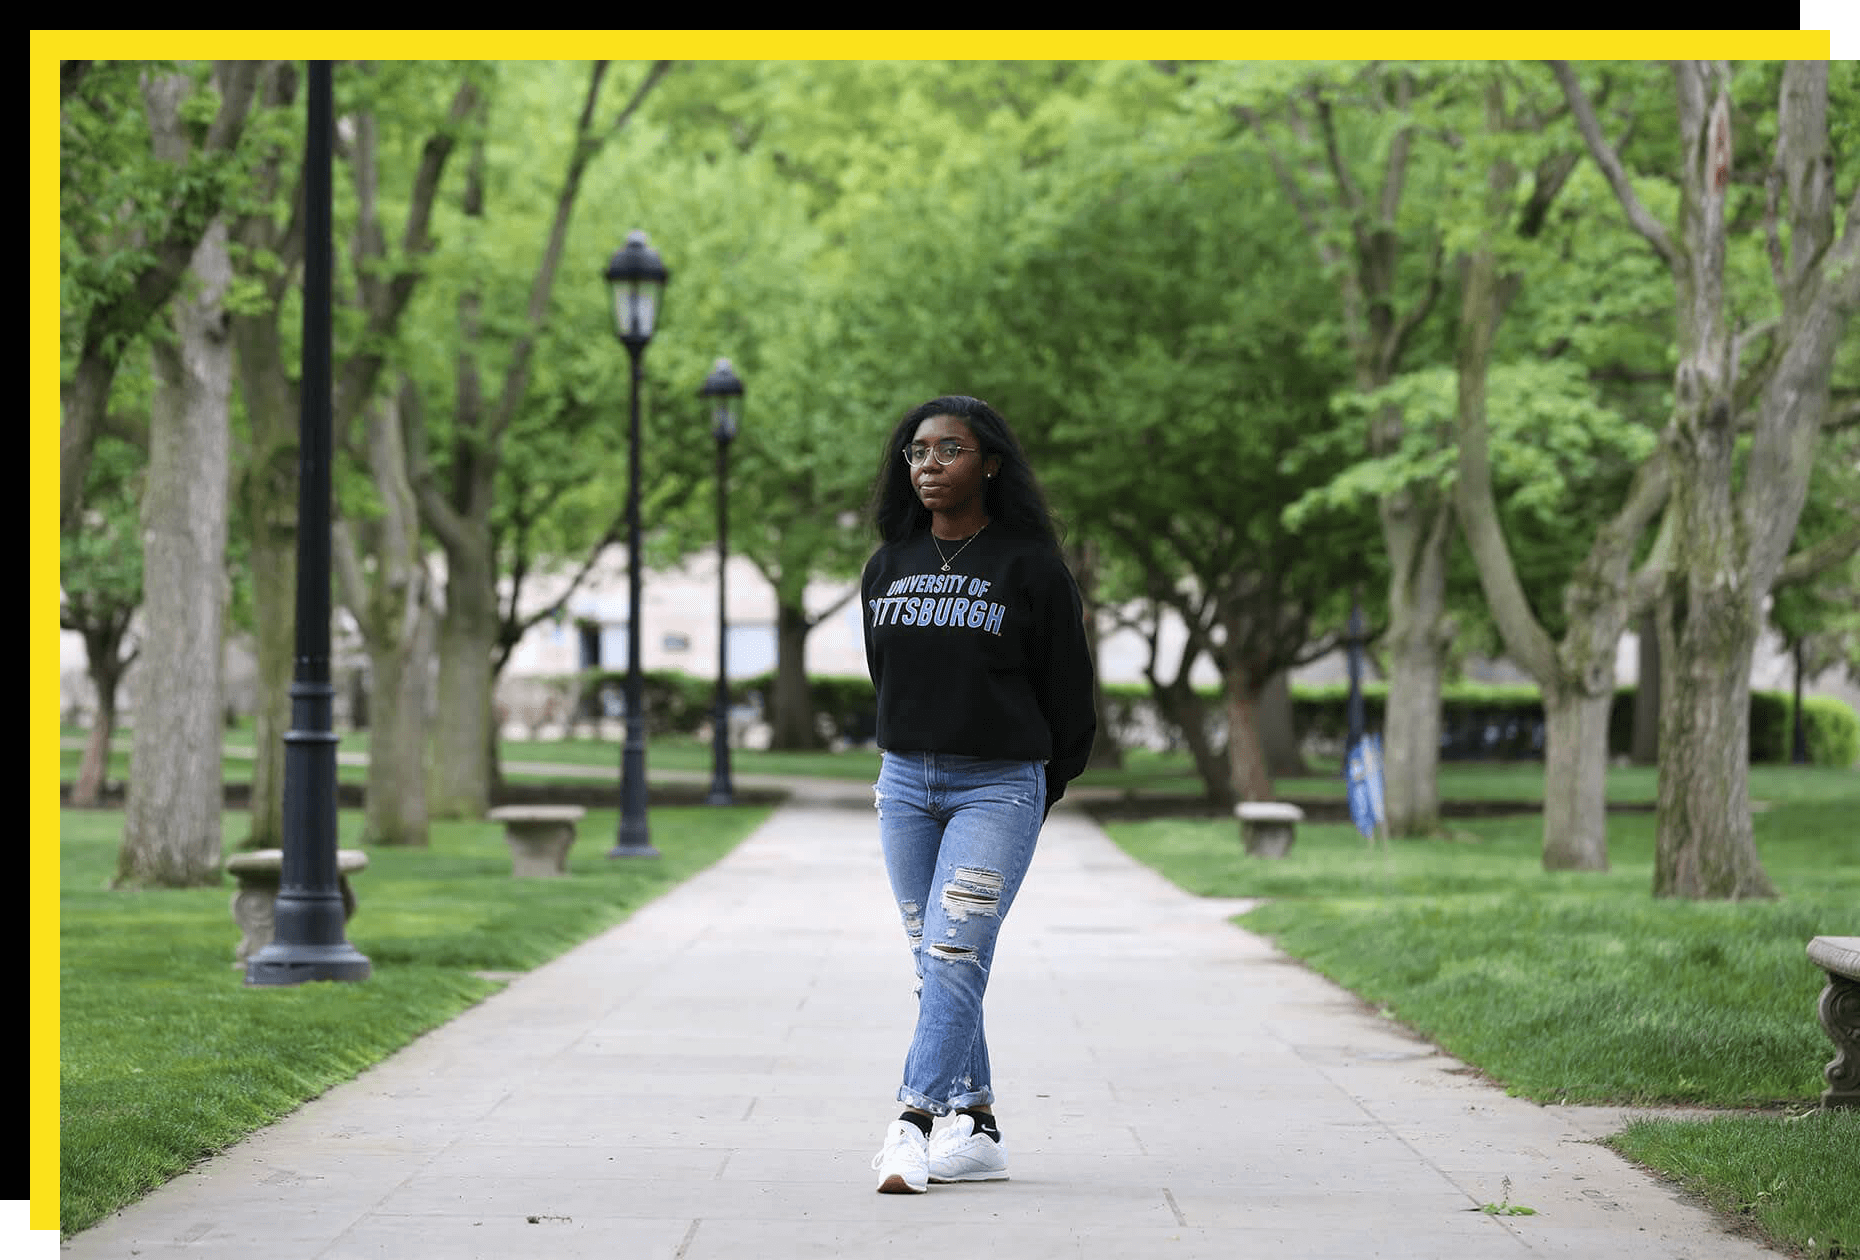 Morgan Ottley, president of the Black Acton Society at University of Pittsburgh, standing on campus in a Pitt sweatshirt.